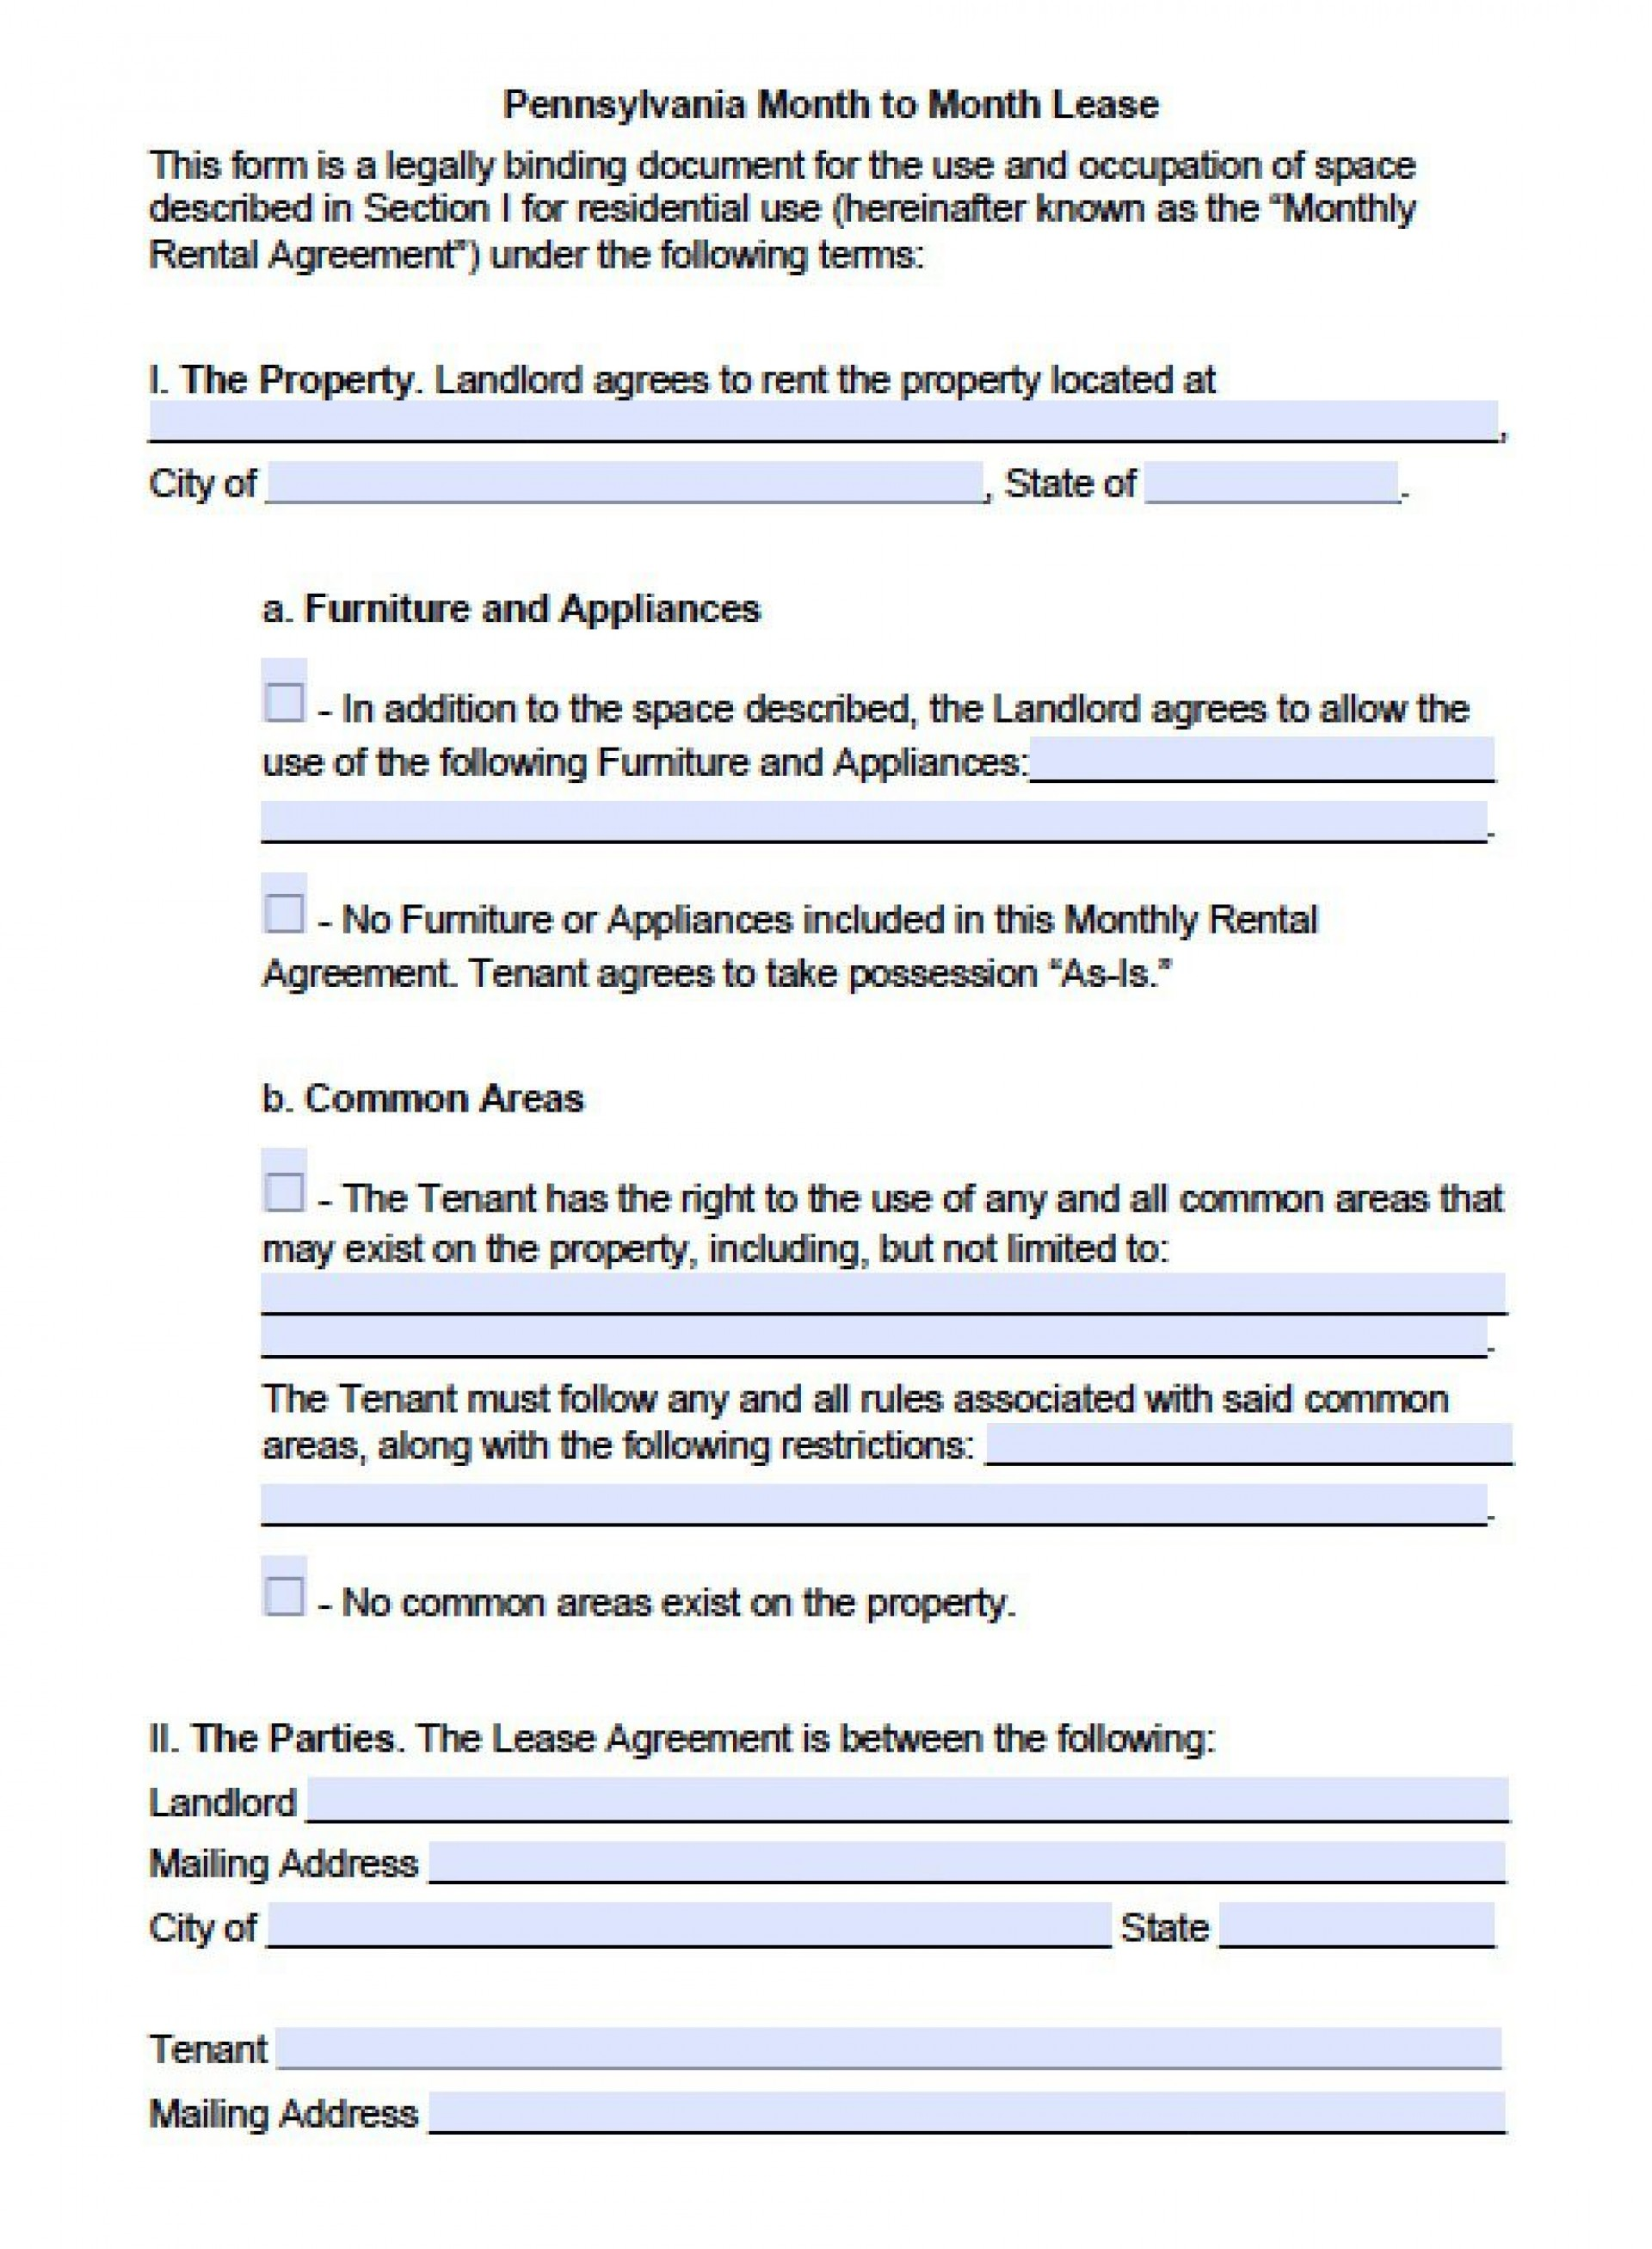 004 Frightening Rent To Own Contract Template Pennsylvania Concept 1920